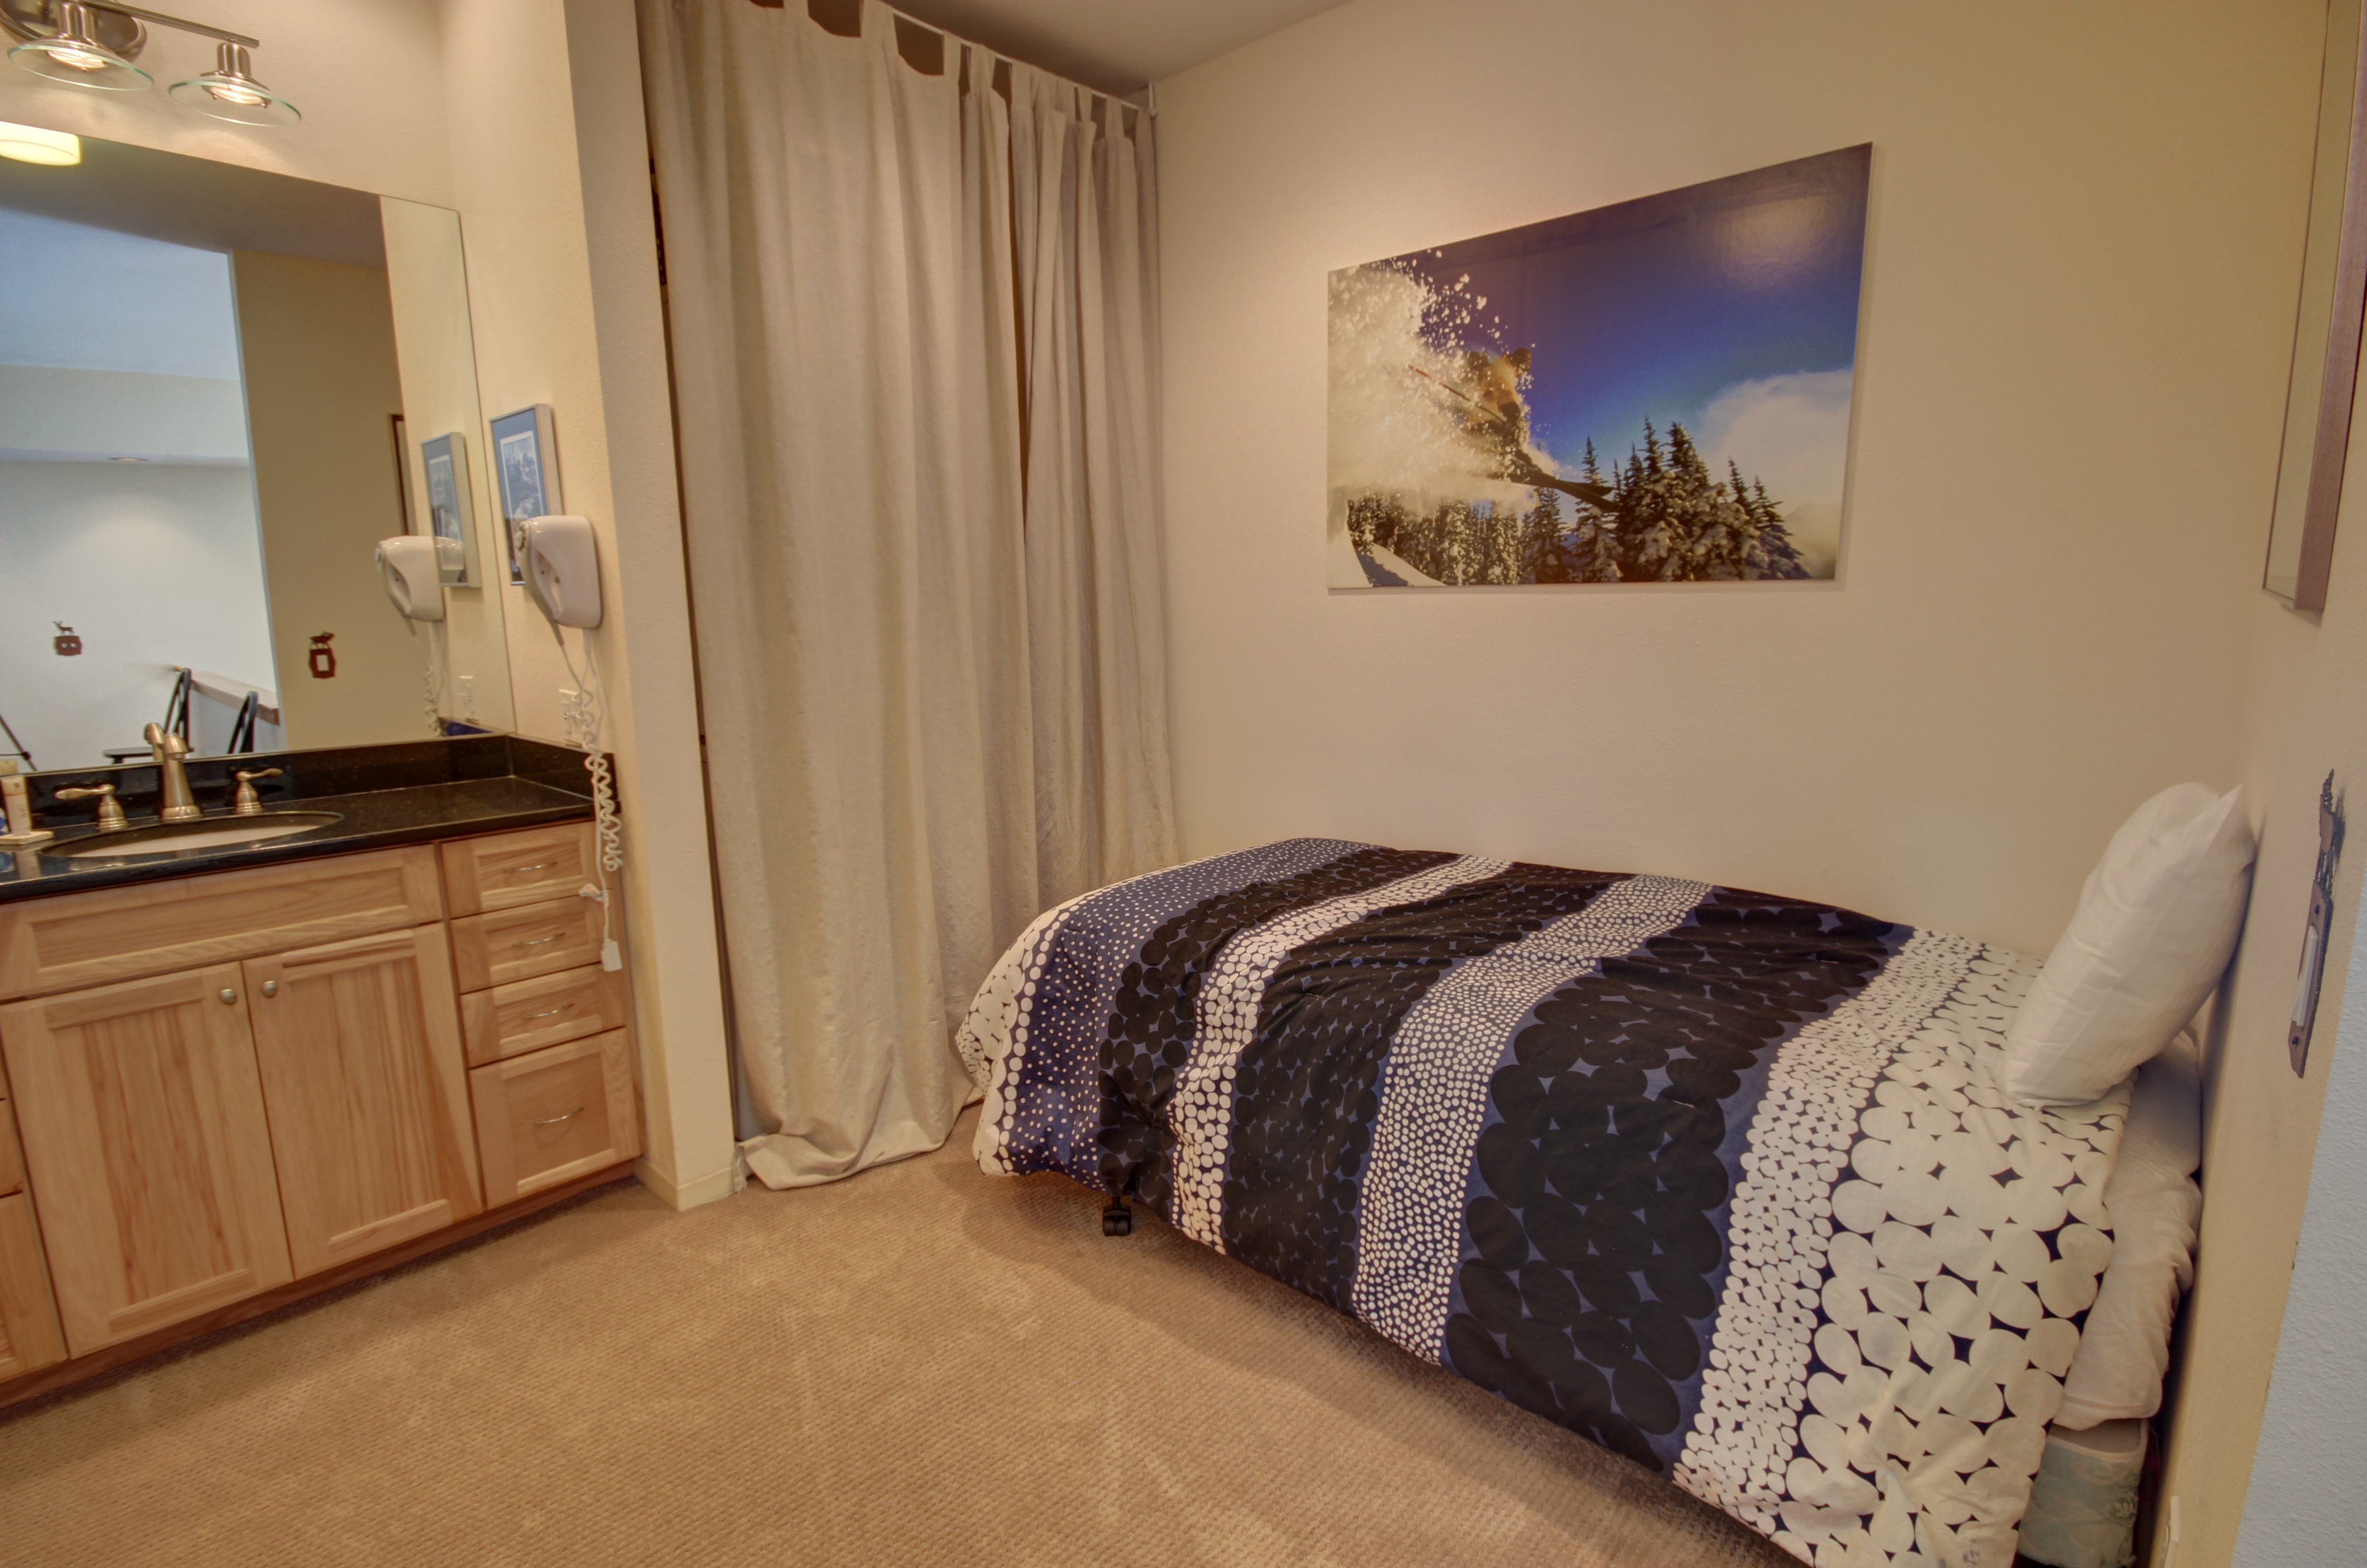 Comfortable bed with space to relax